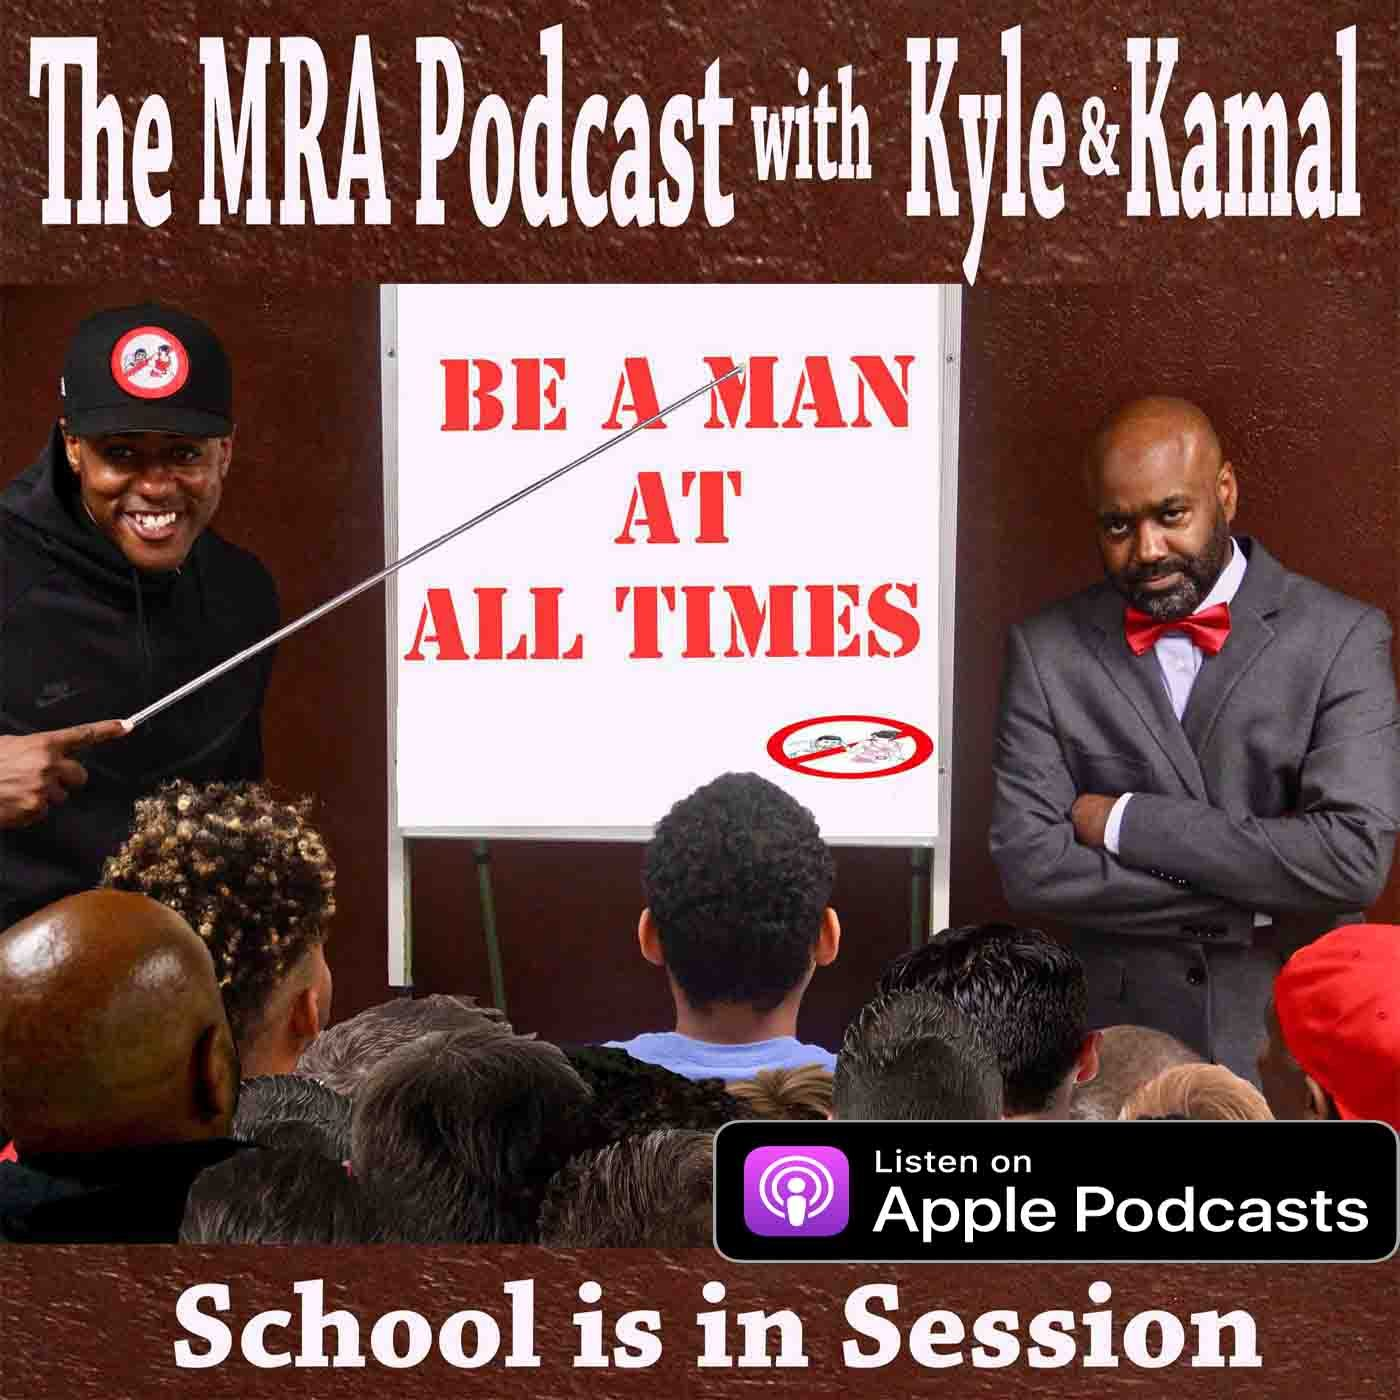 Logo for The MRA Podcast with Kyle & Kamal